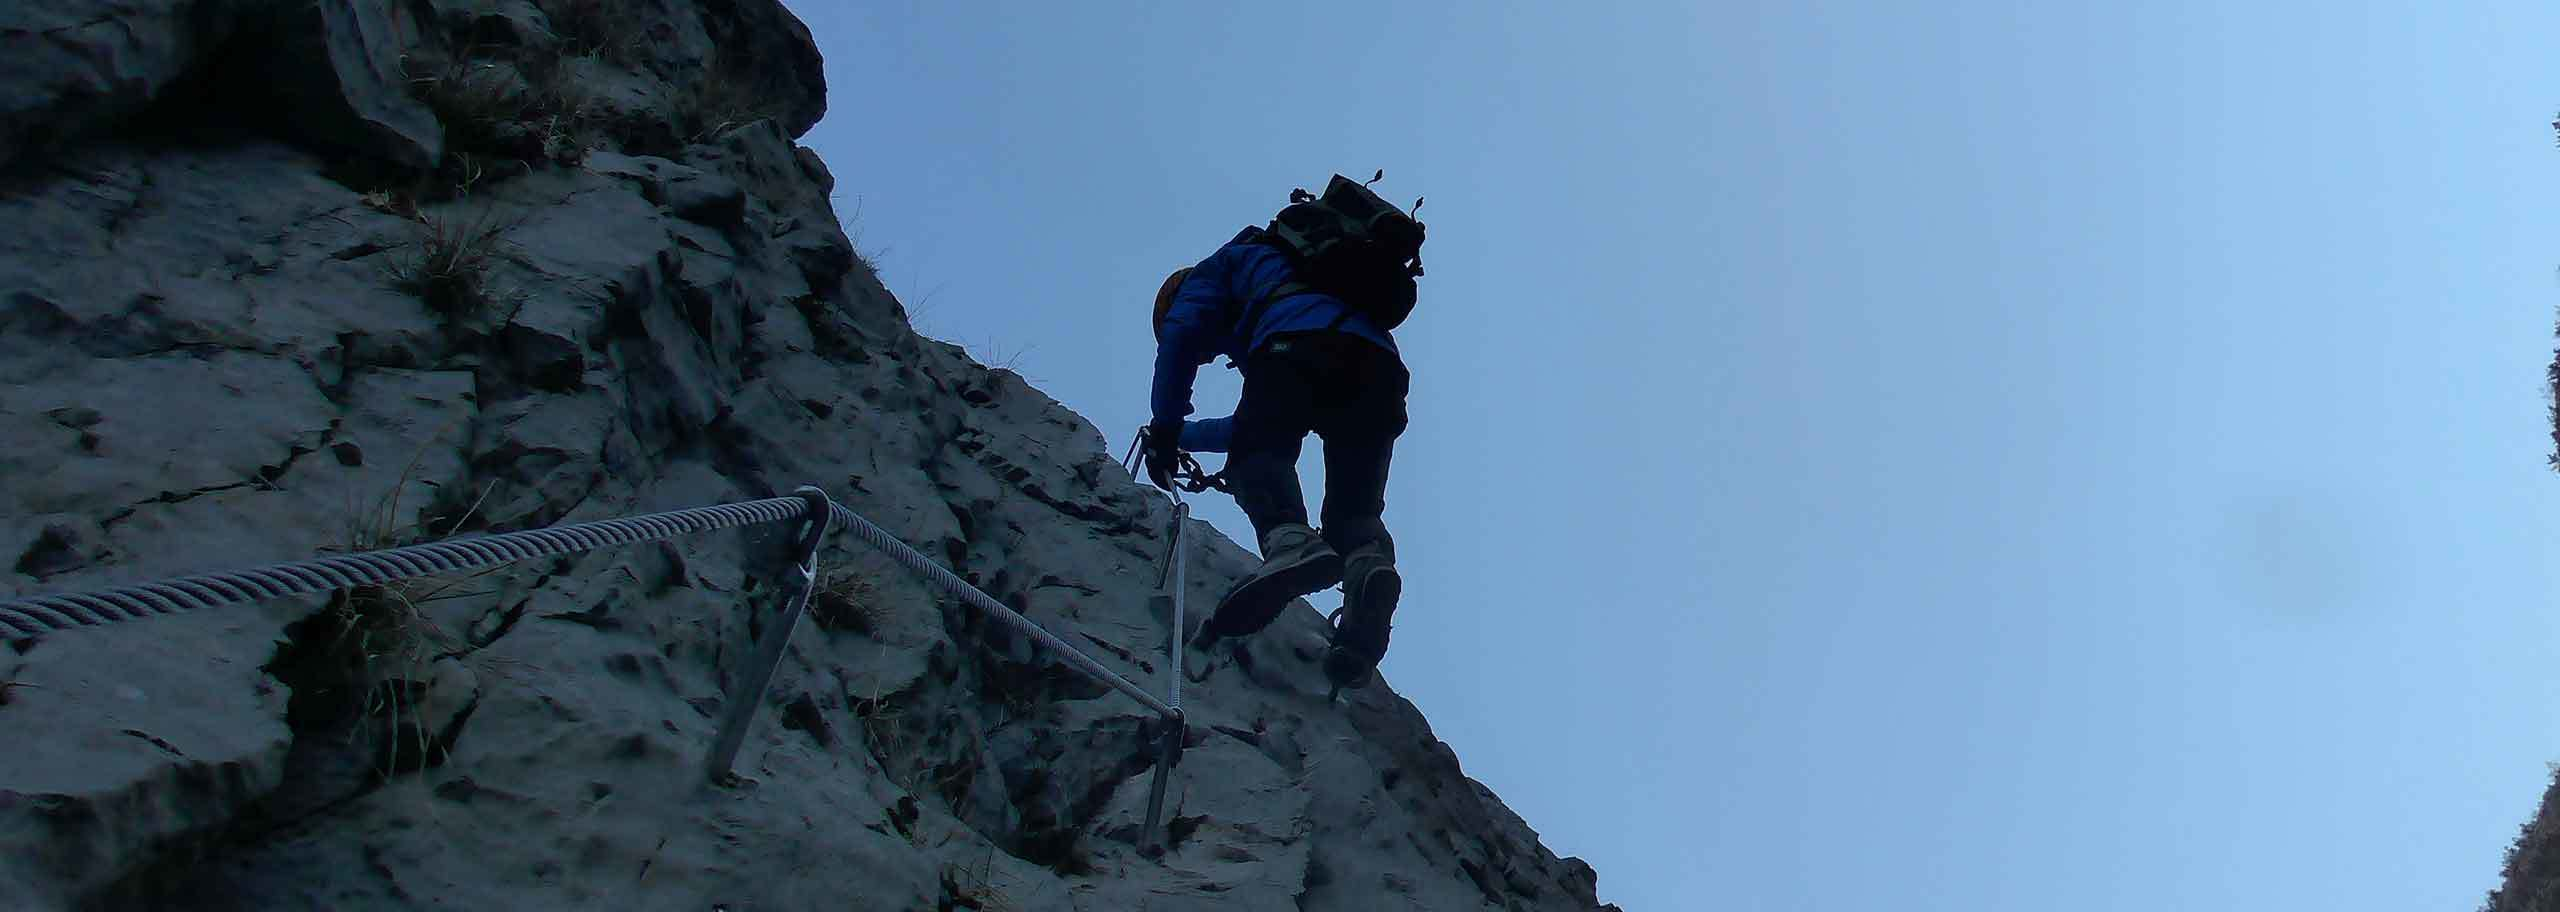 Via Ferrata in Alagna Valsesia with Mountain Guide